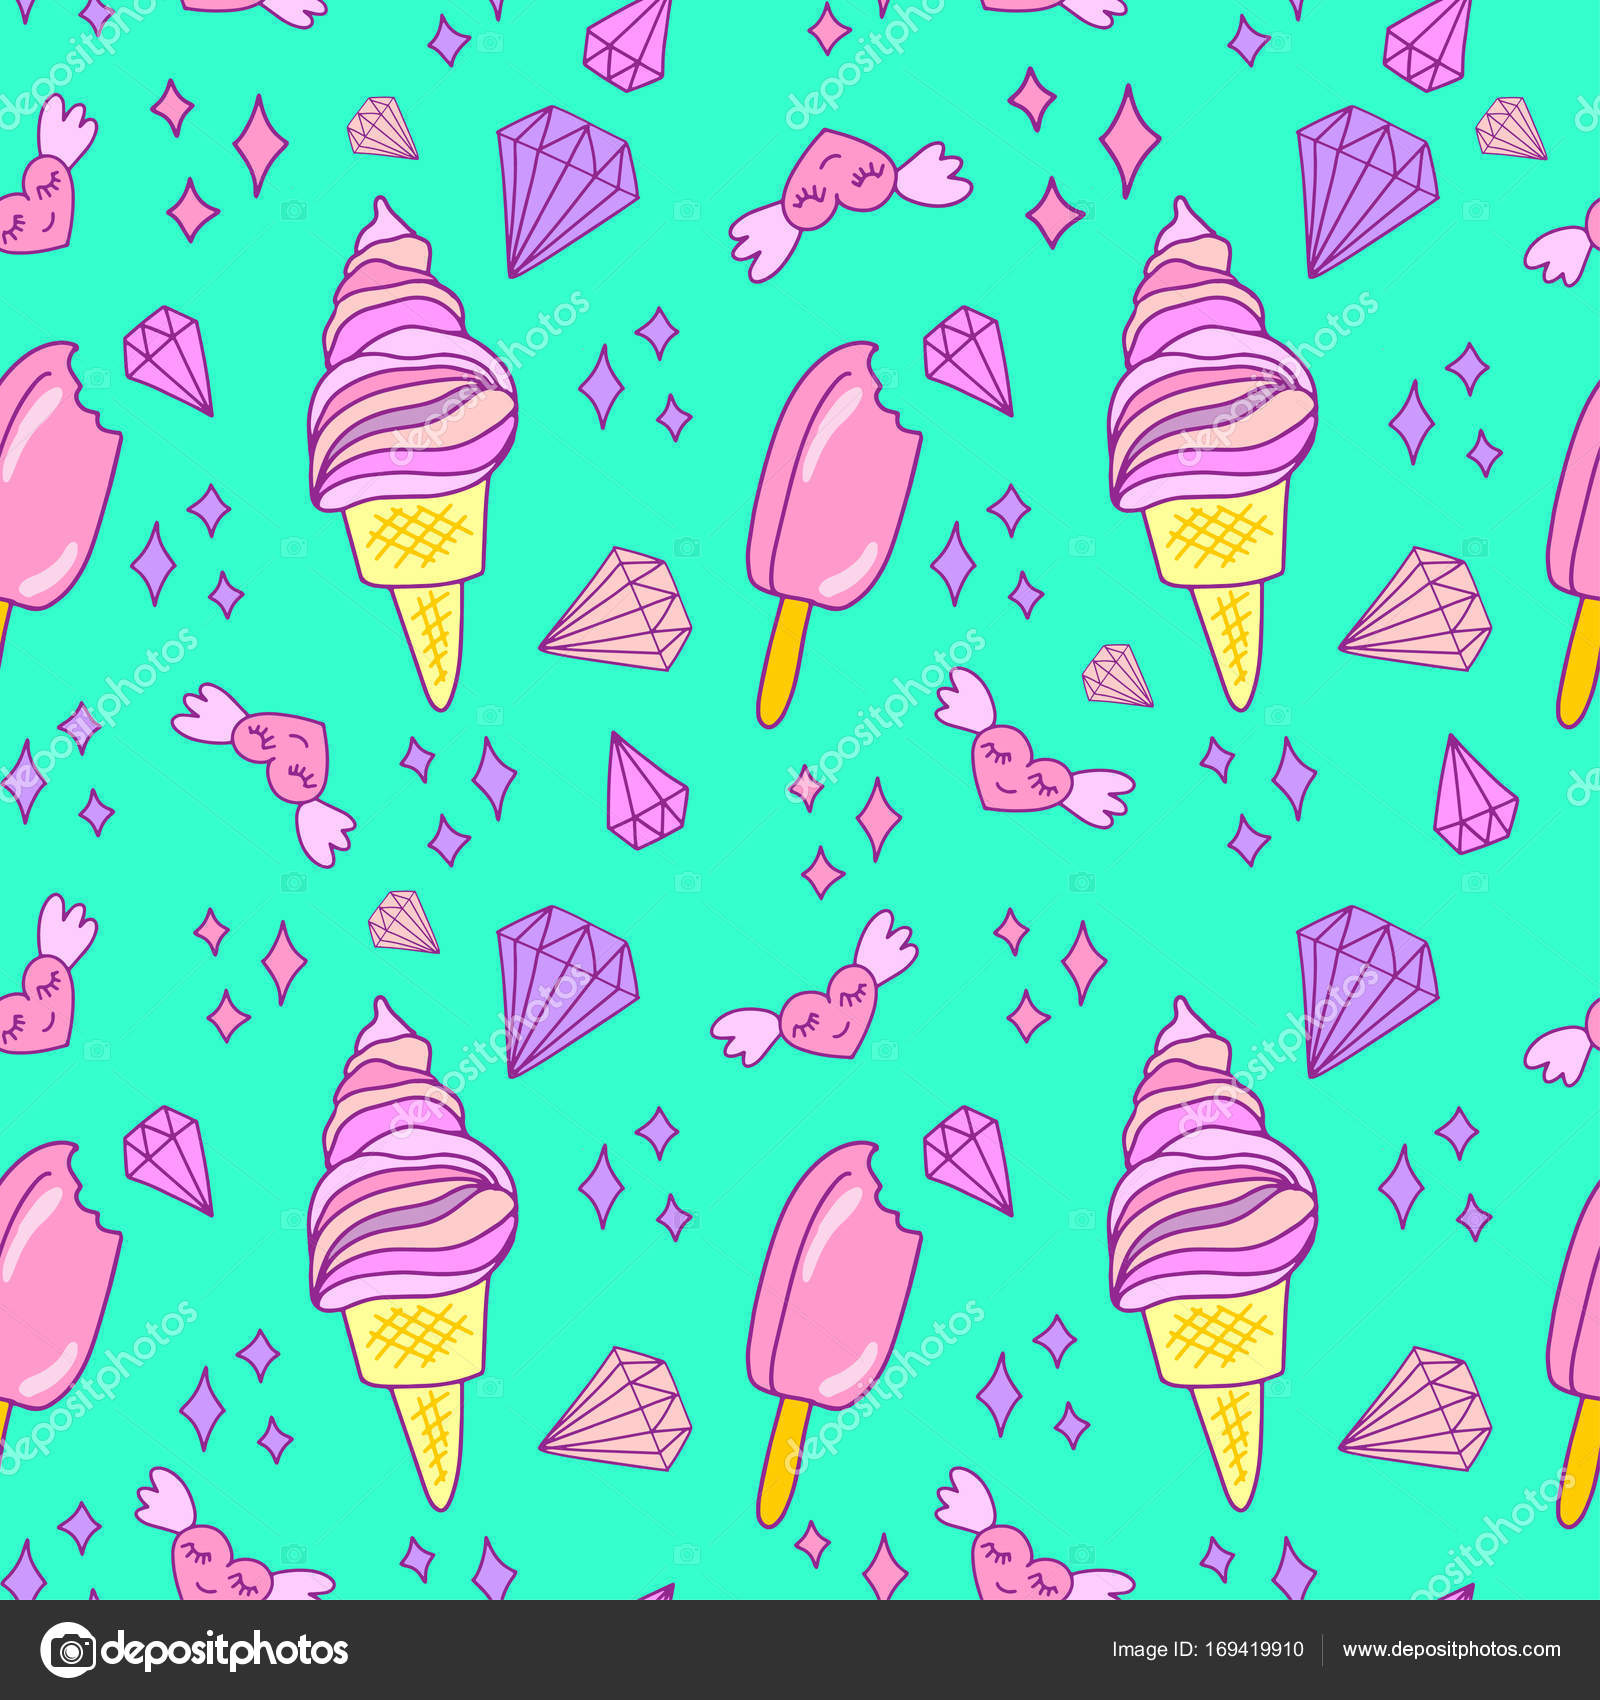 Ice Cream Cones Seamless Pattern Background Stock Vector: Lovely Ice Cream Cones Seamless Background Pattern. Vector